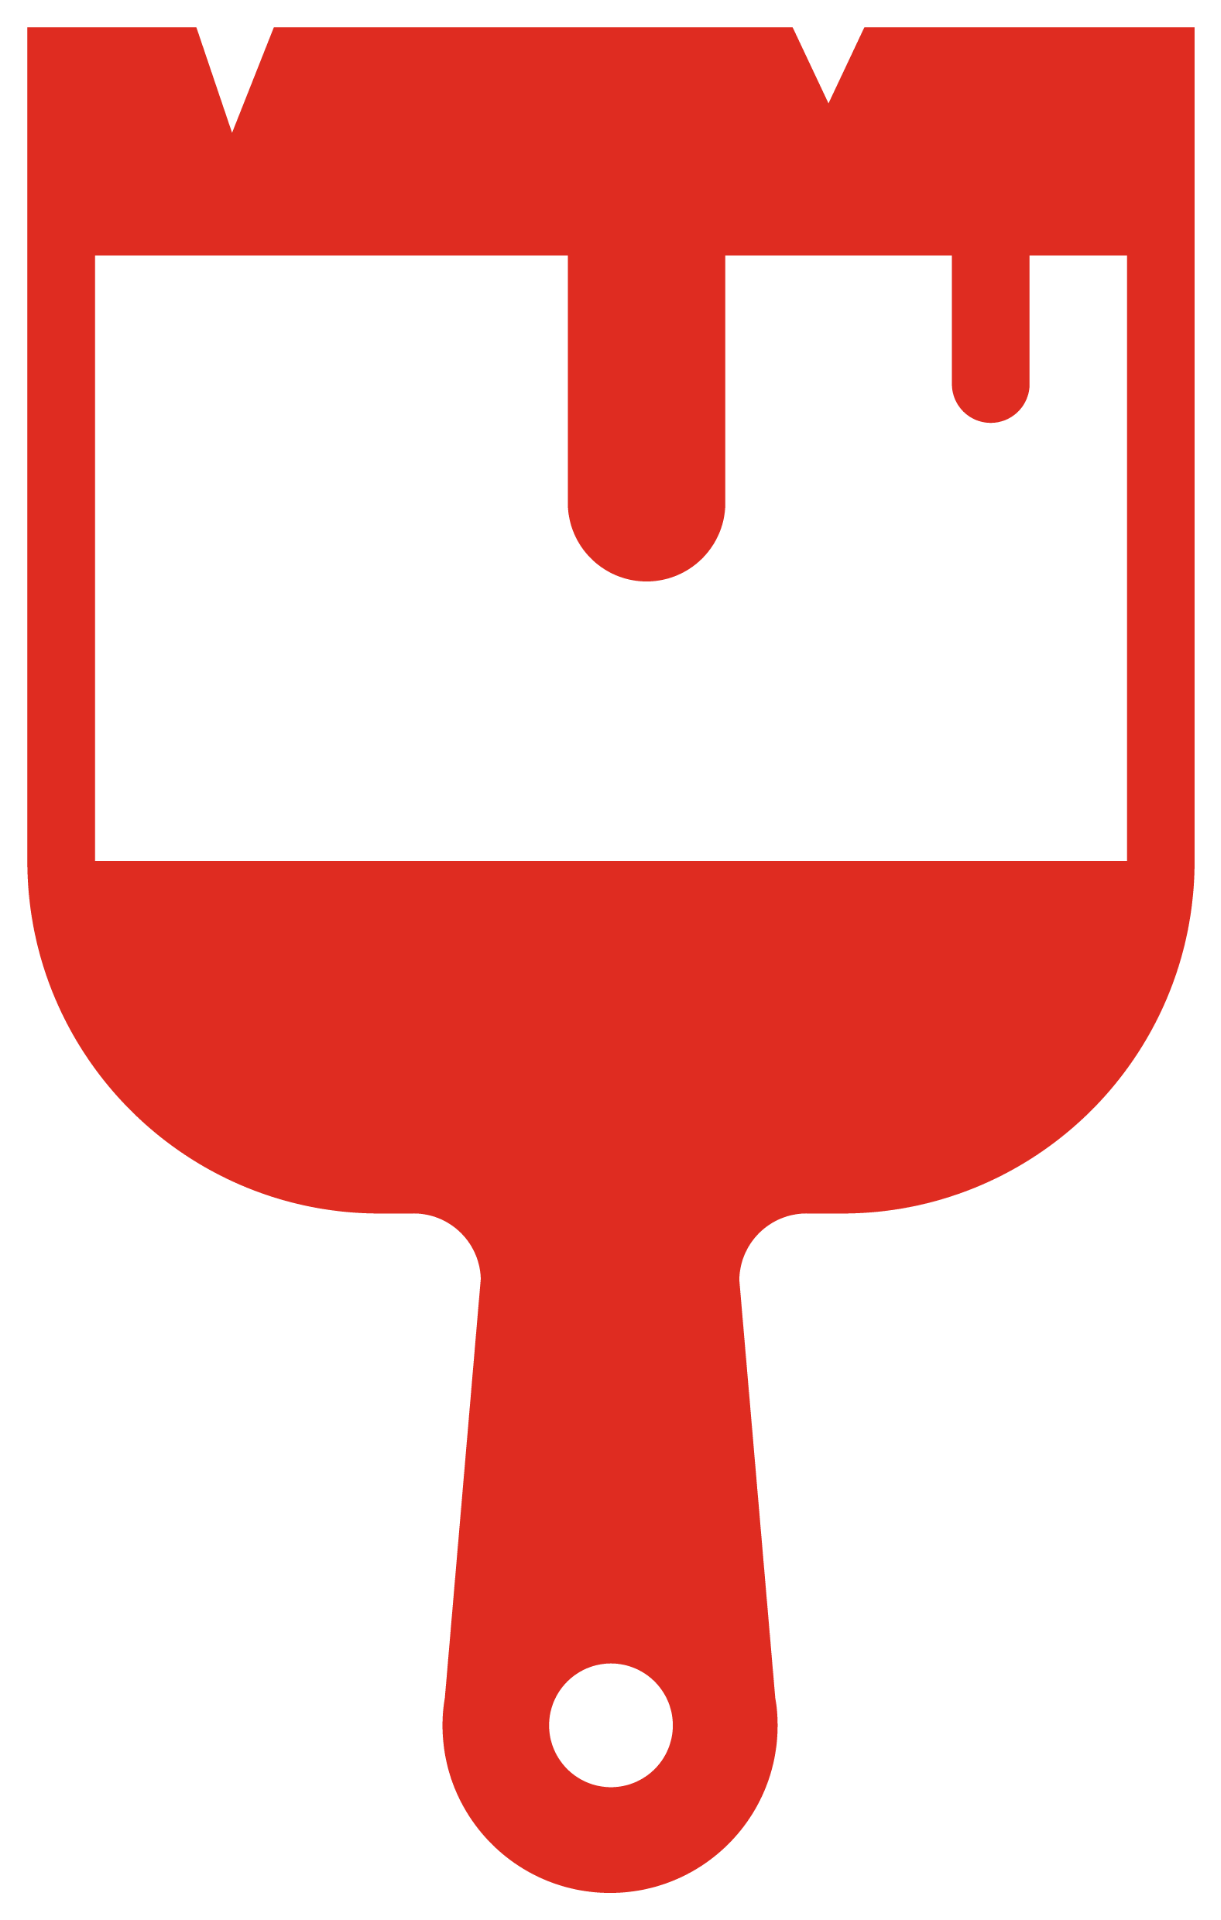 300dpi_Icons_RED-9.png